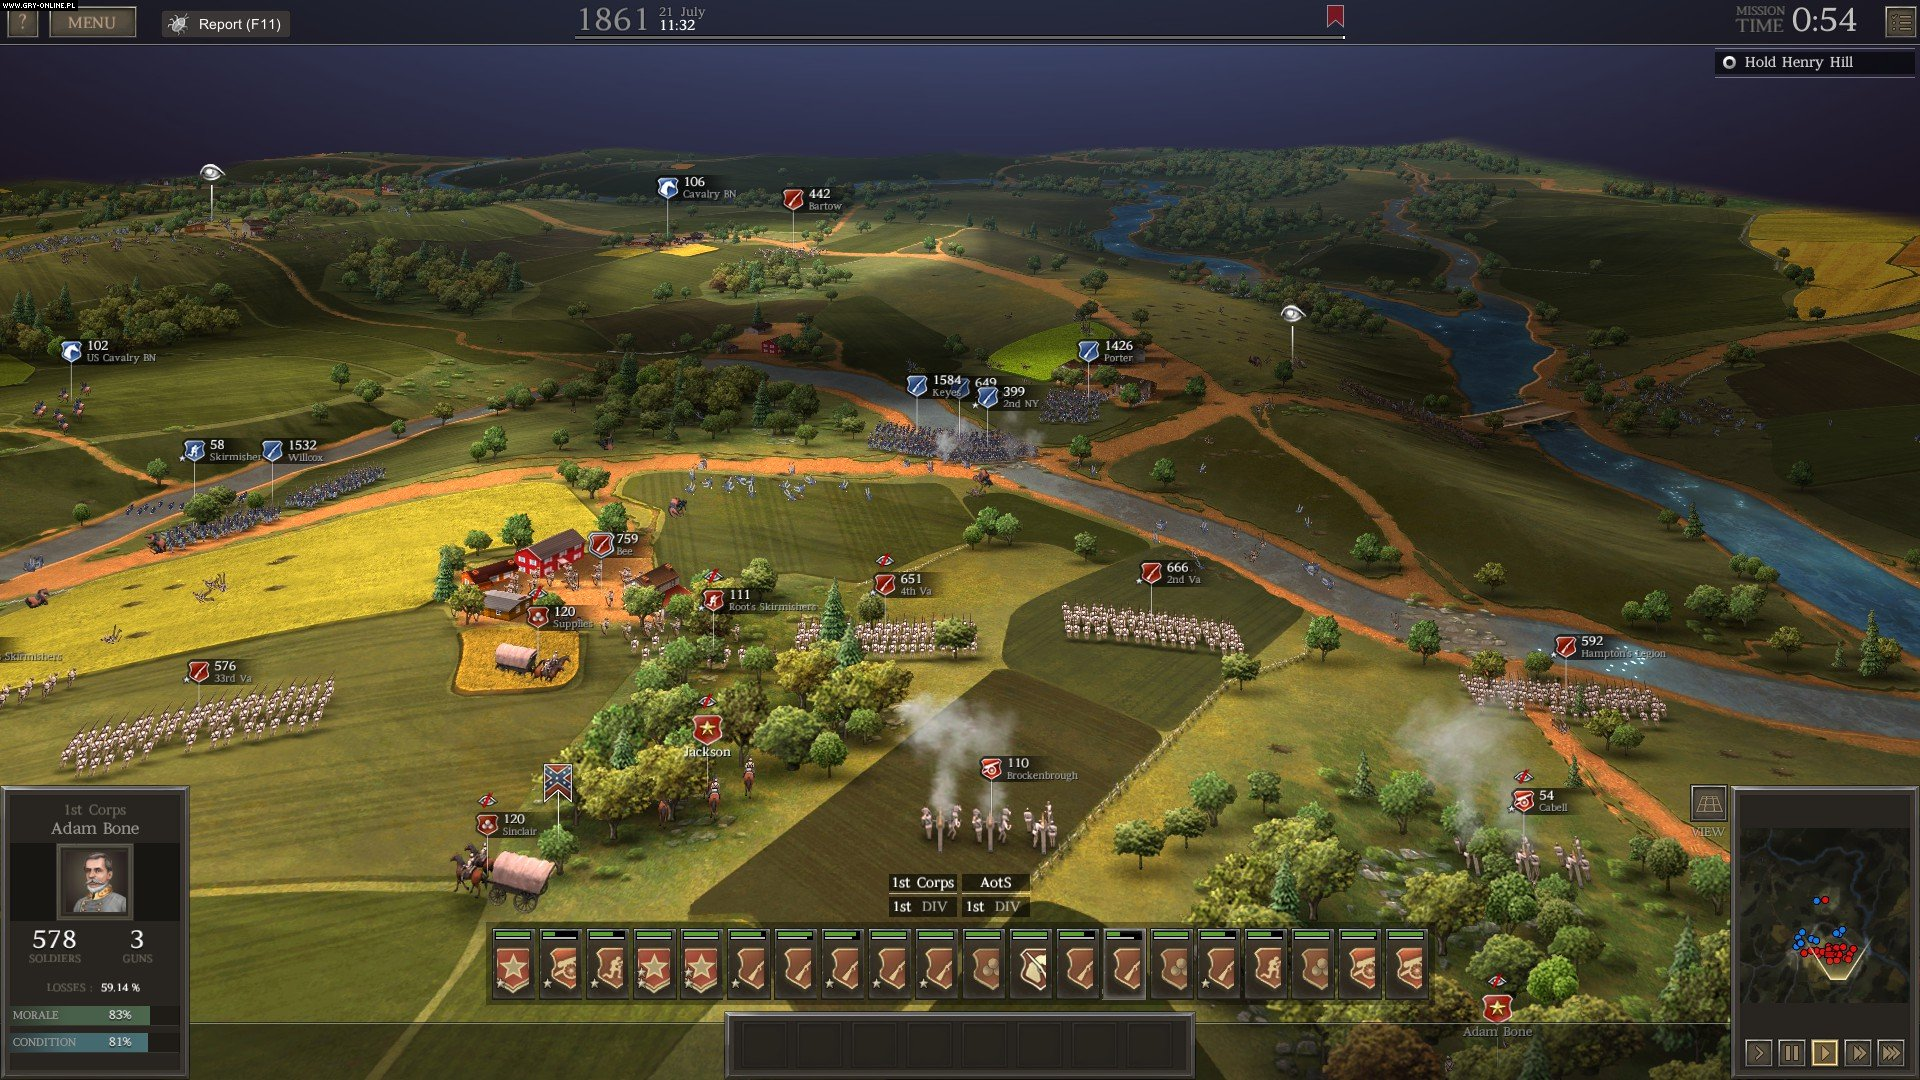 Ultimate General: Civil War PC Games Image 2/30, Game-Labs